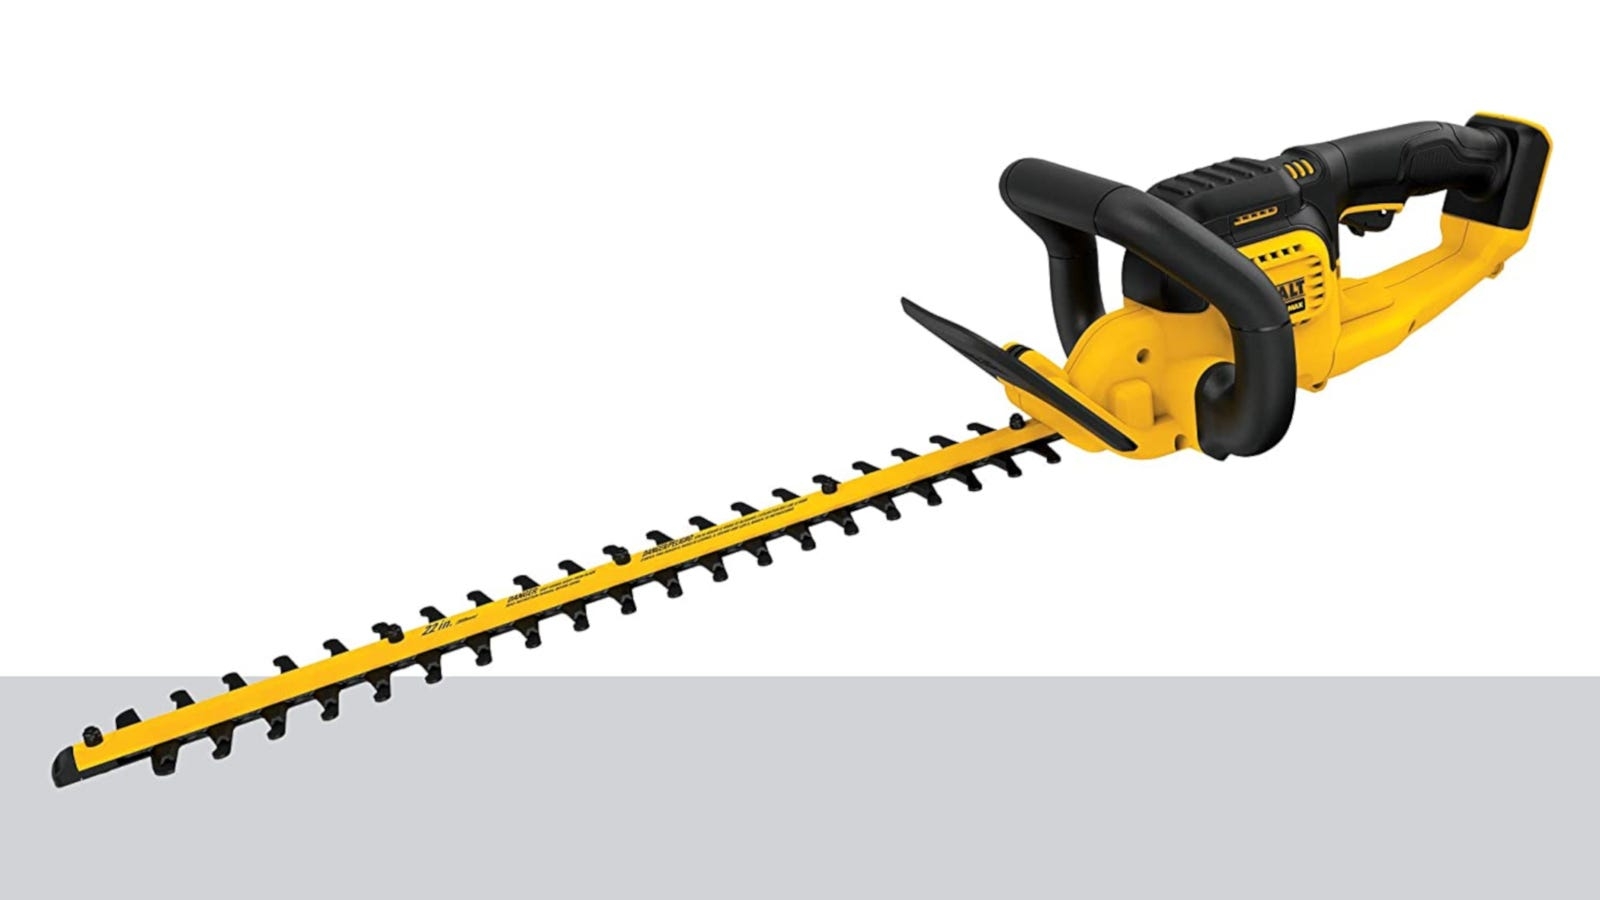 Yellow and black 20V cordless hedge trimmer with 22-inch hooked-tooth blade